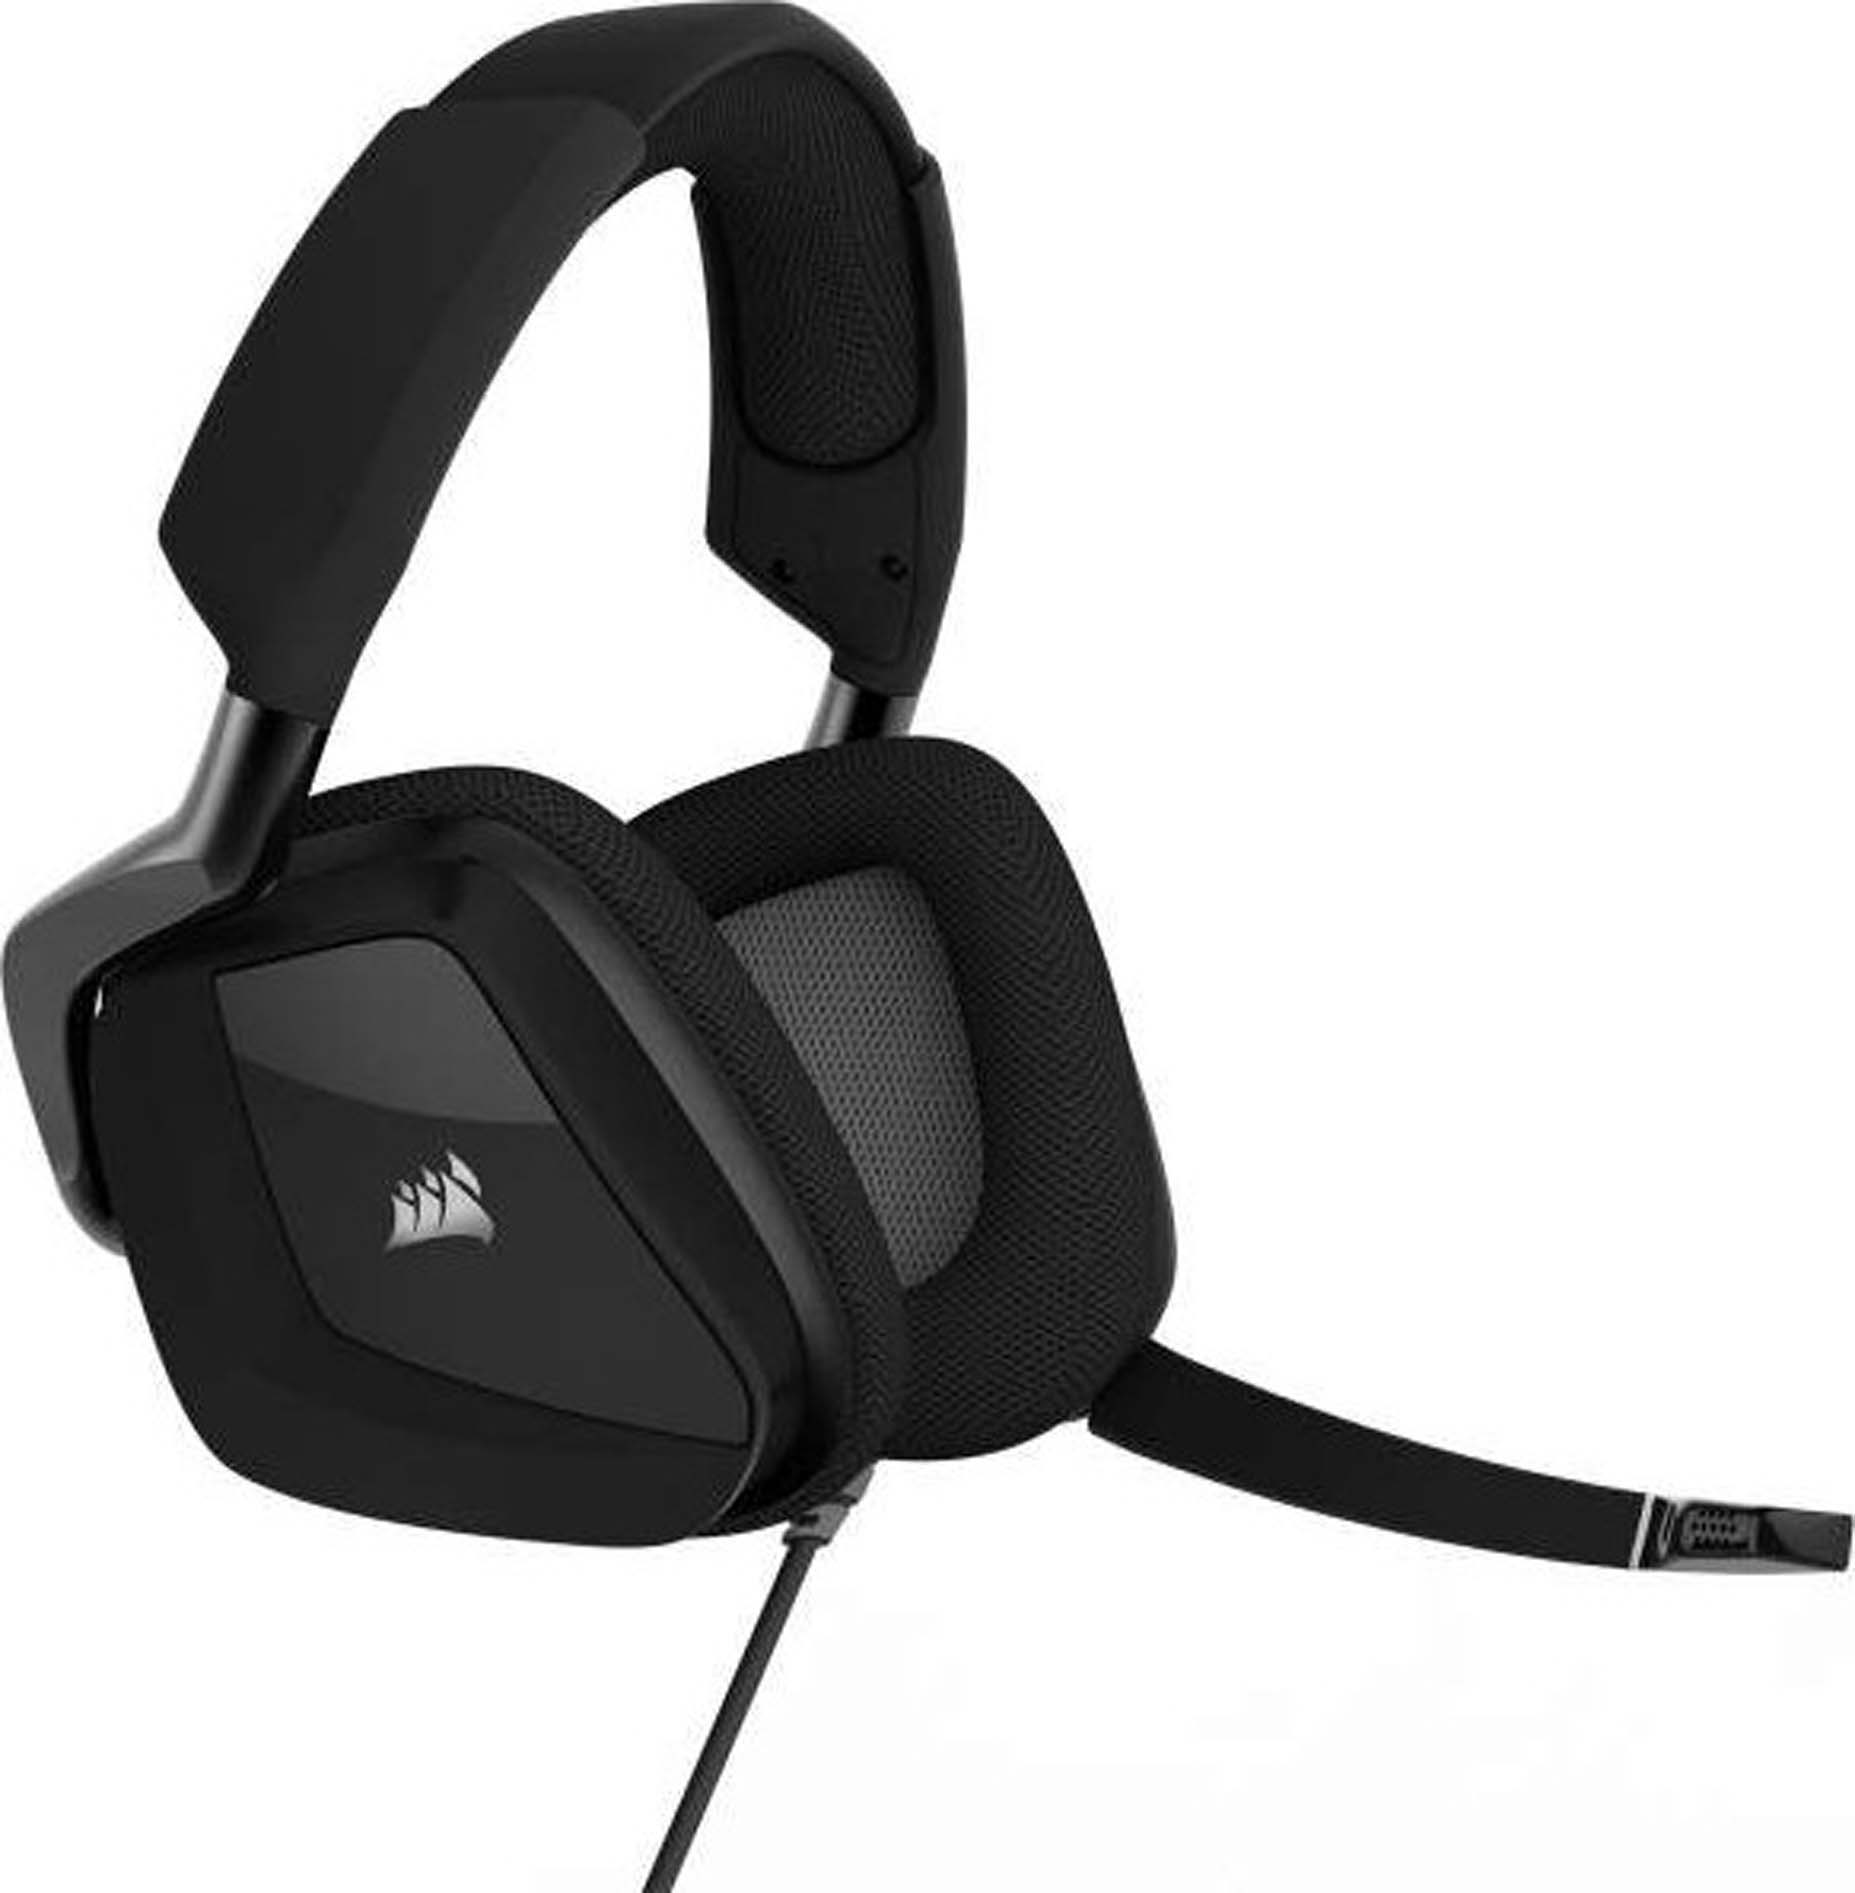 Harga Jual Corsair CA-9011130-NA VOID RGB USB Dolby 7-1 Gaming Headset